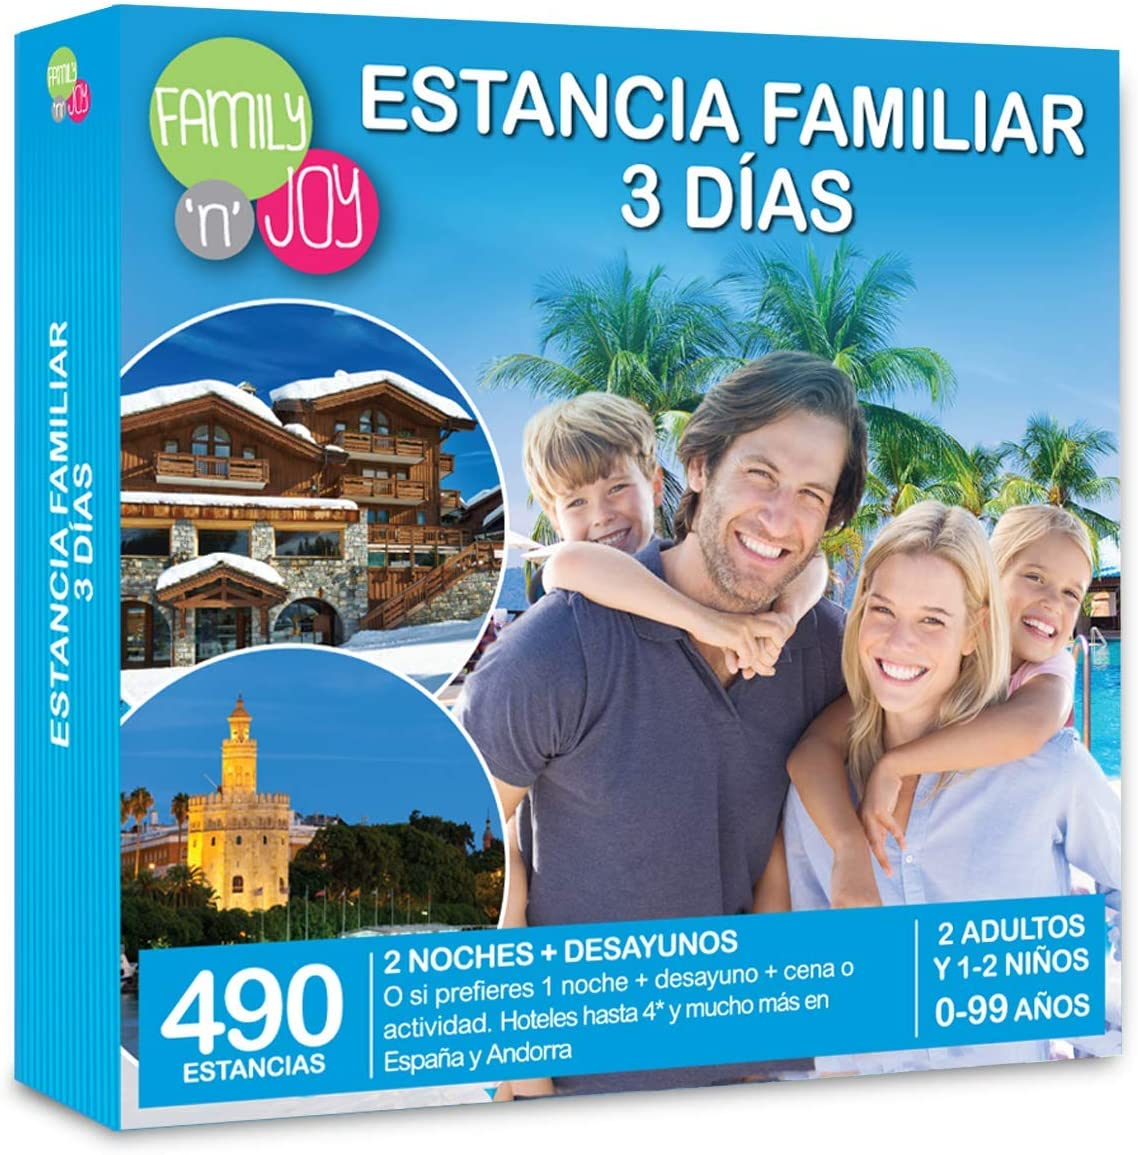 family n joy estancia familiar 3 dias